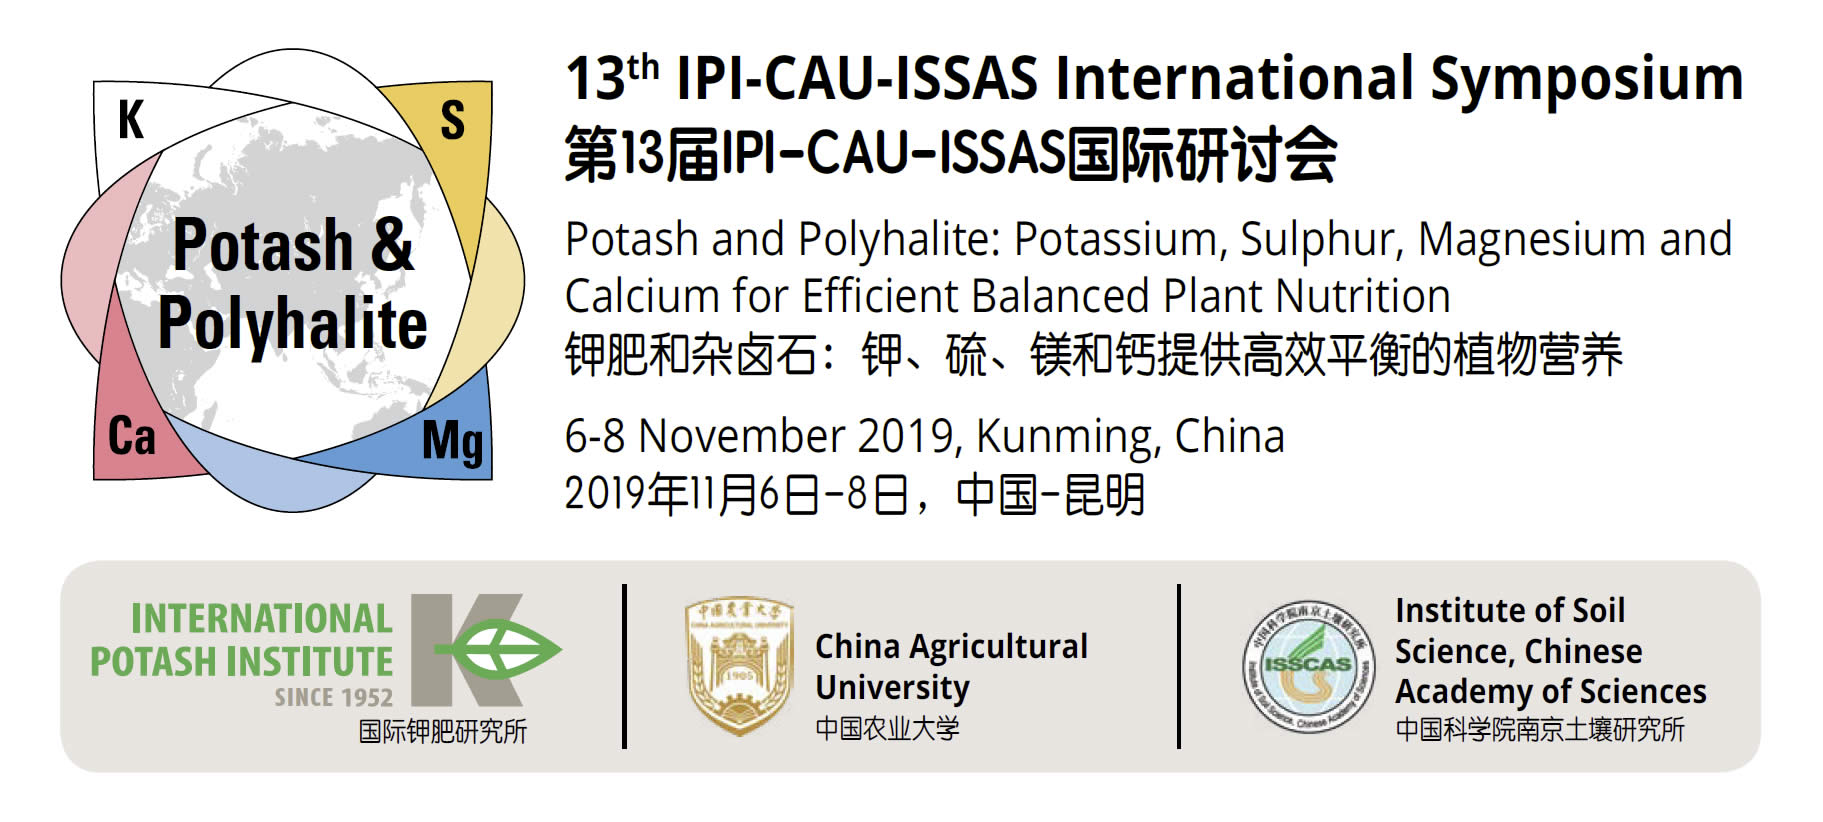 13th IPI-CAU-ISSAS International Symposium